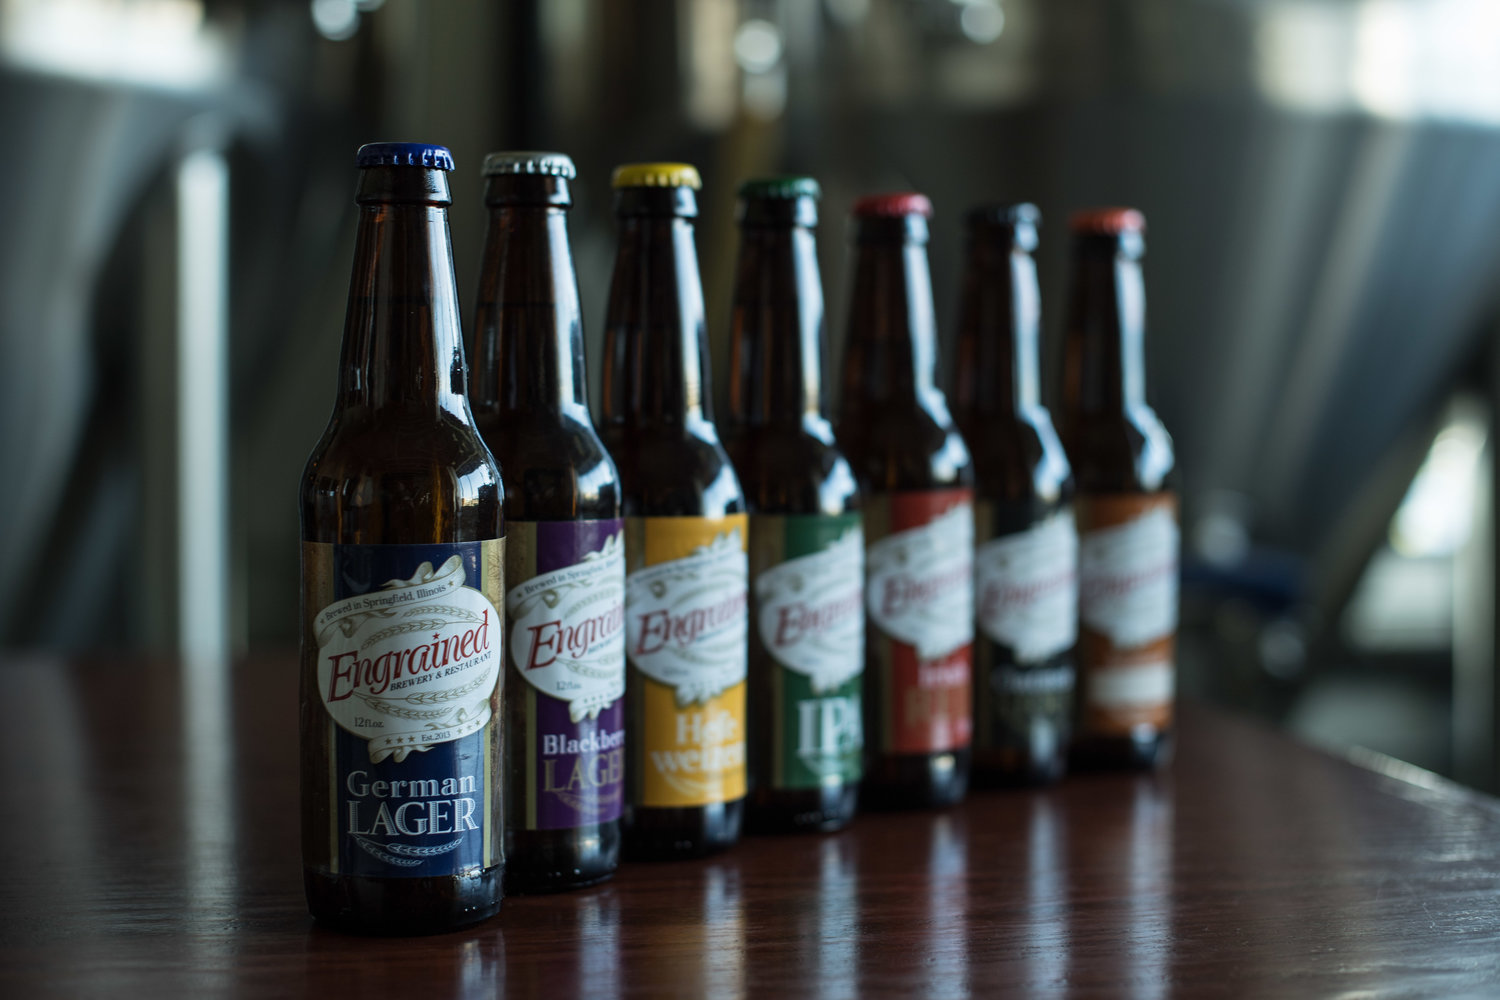 Springfield's Engrained Brewery & Restaurant launches